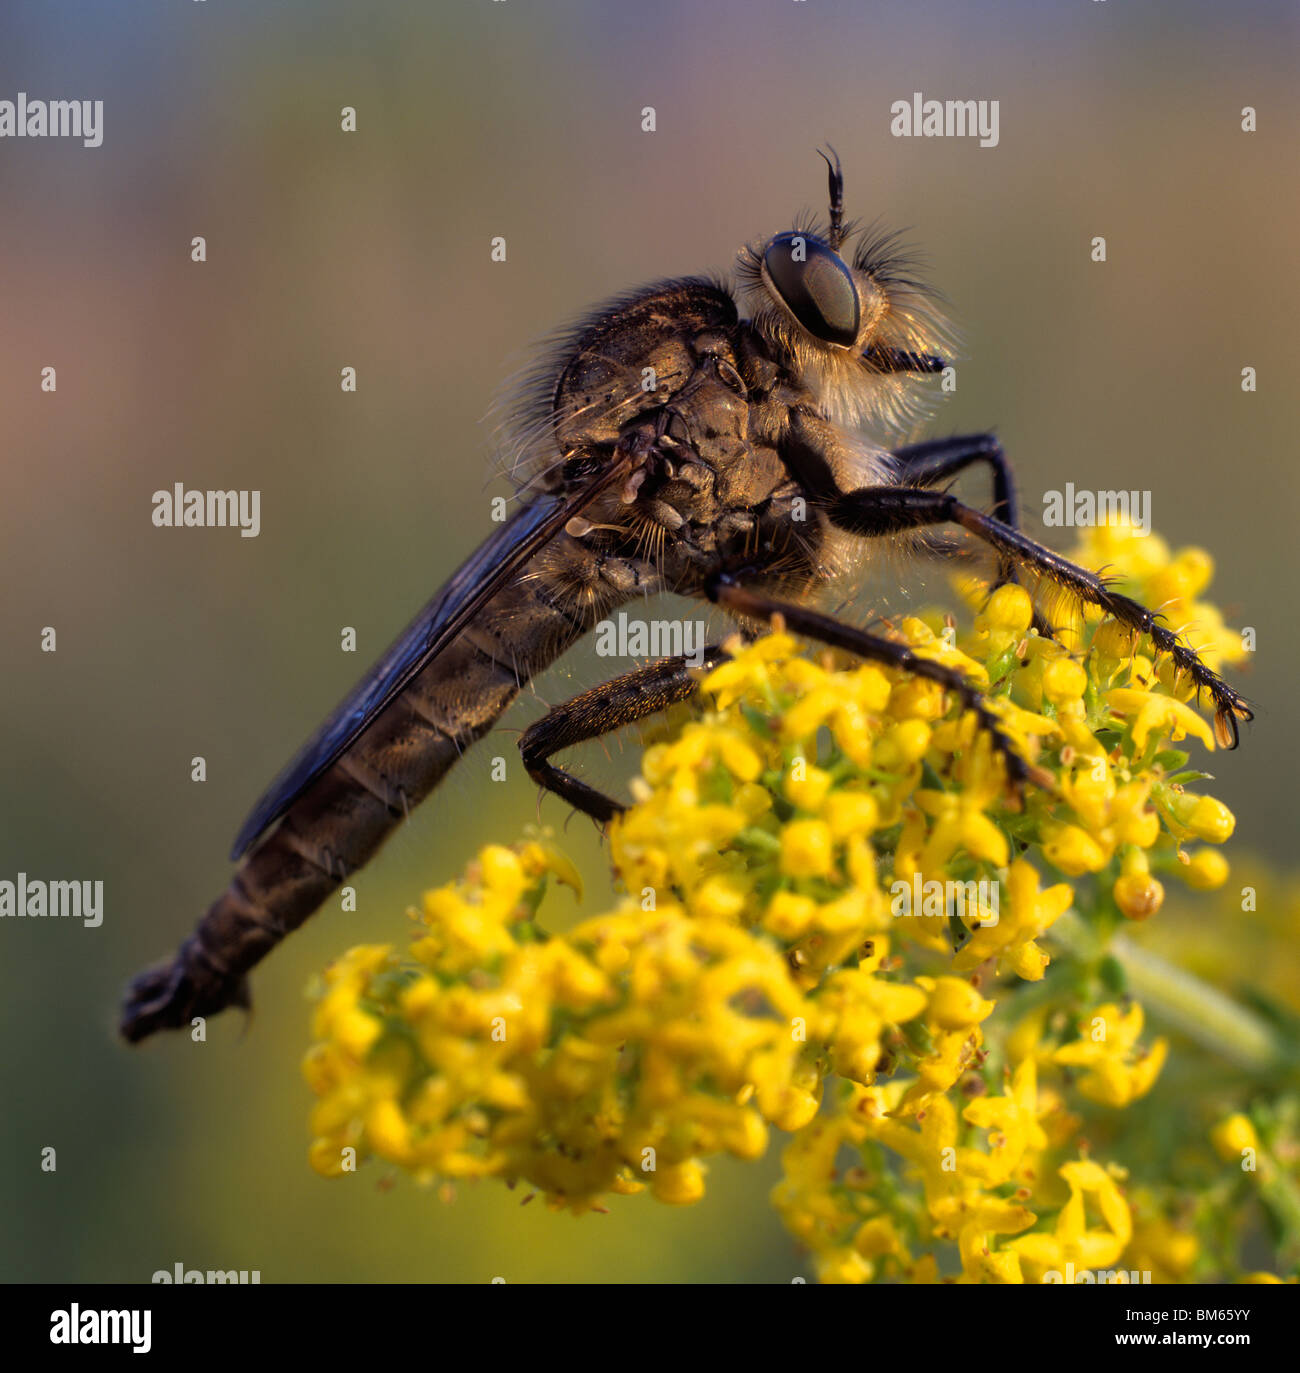 Robber Fly (Pamponerus germanicus) on a yellow flower. - Stock Image